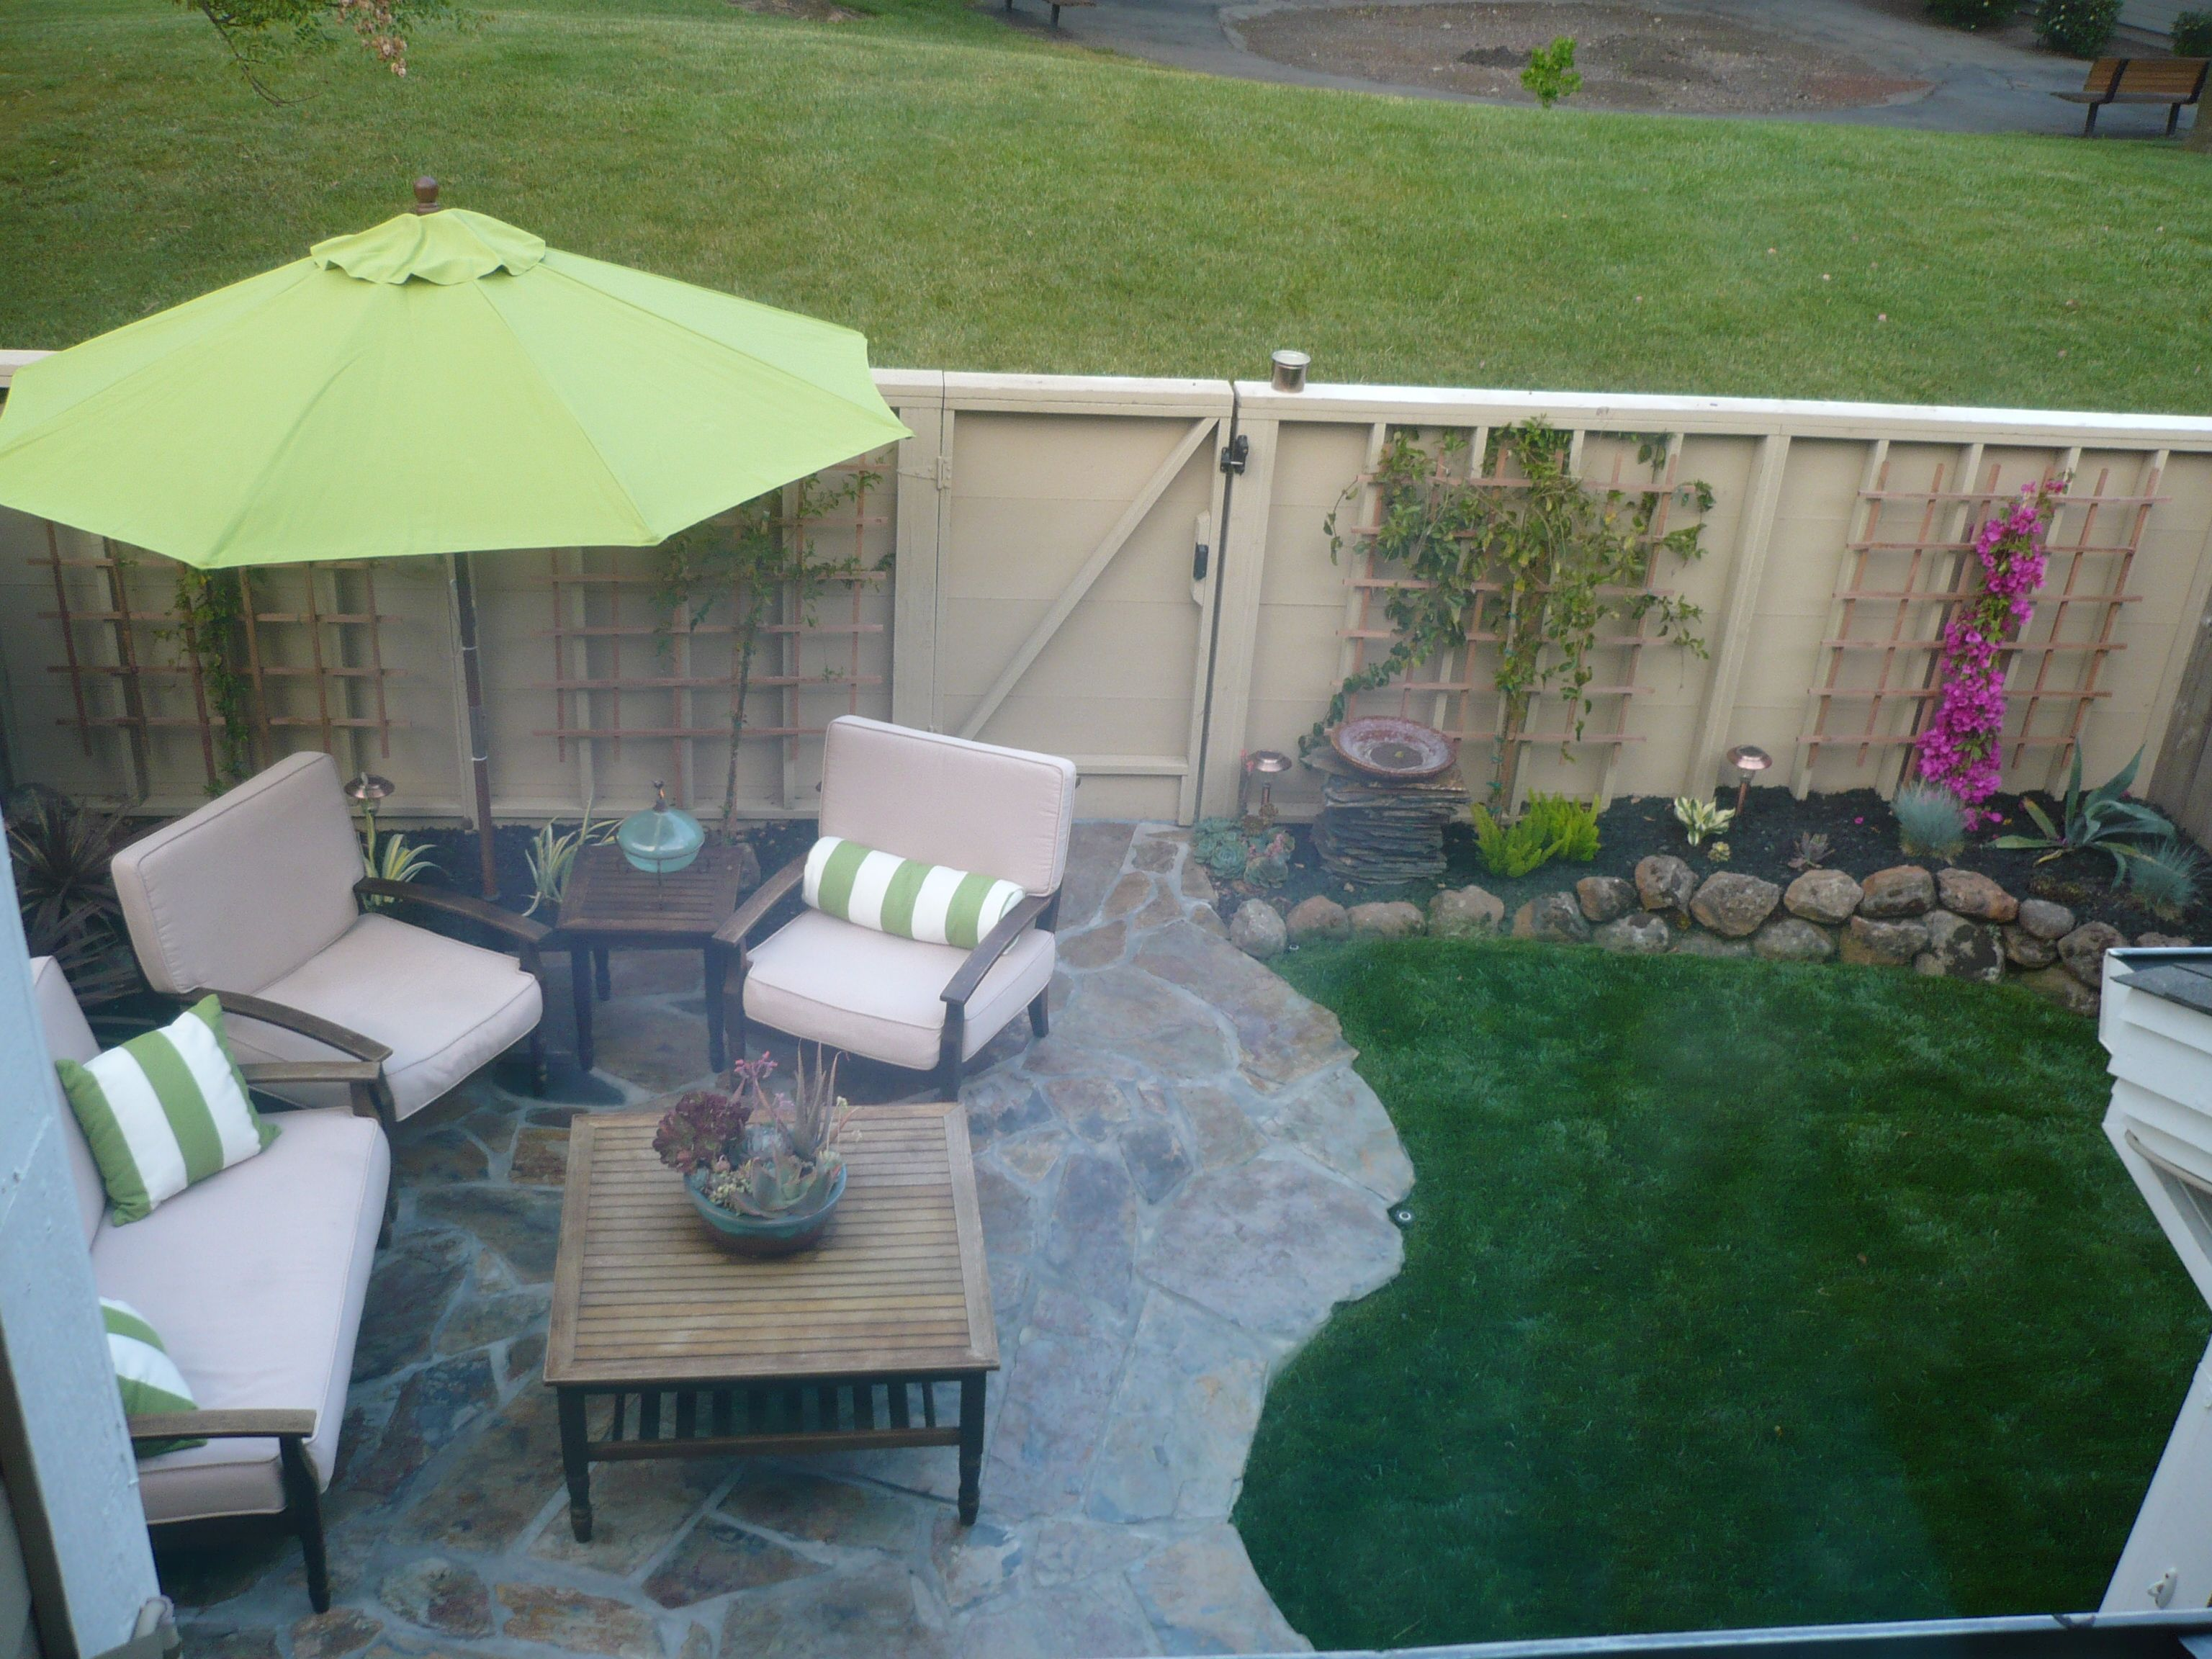 Backyard patio ideas for small spaces - Find This Pin And More On Townhouse Backyard